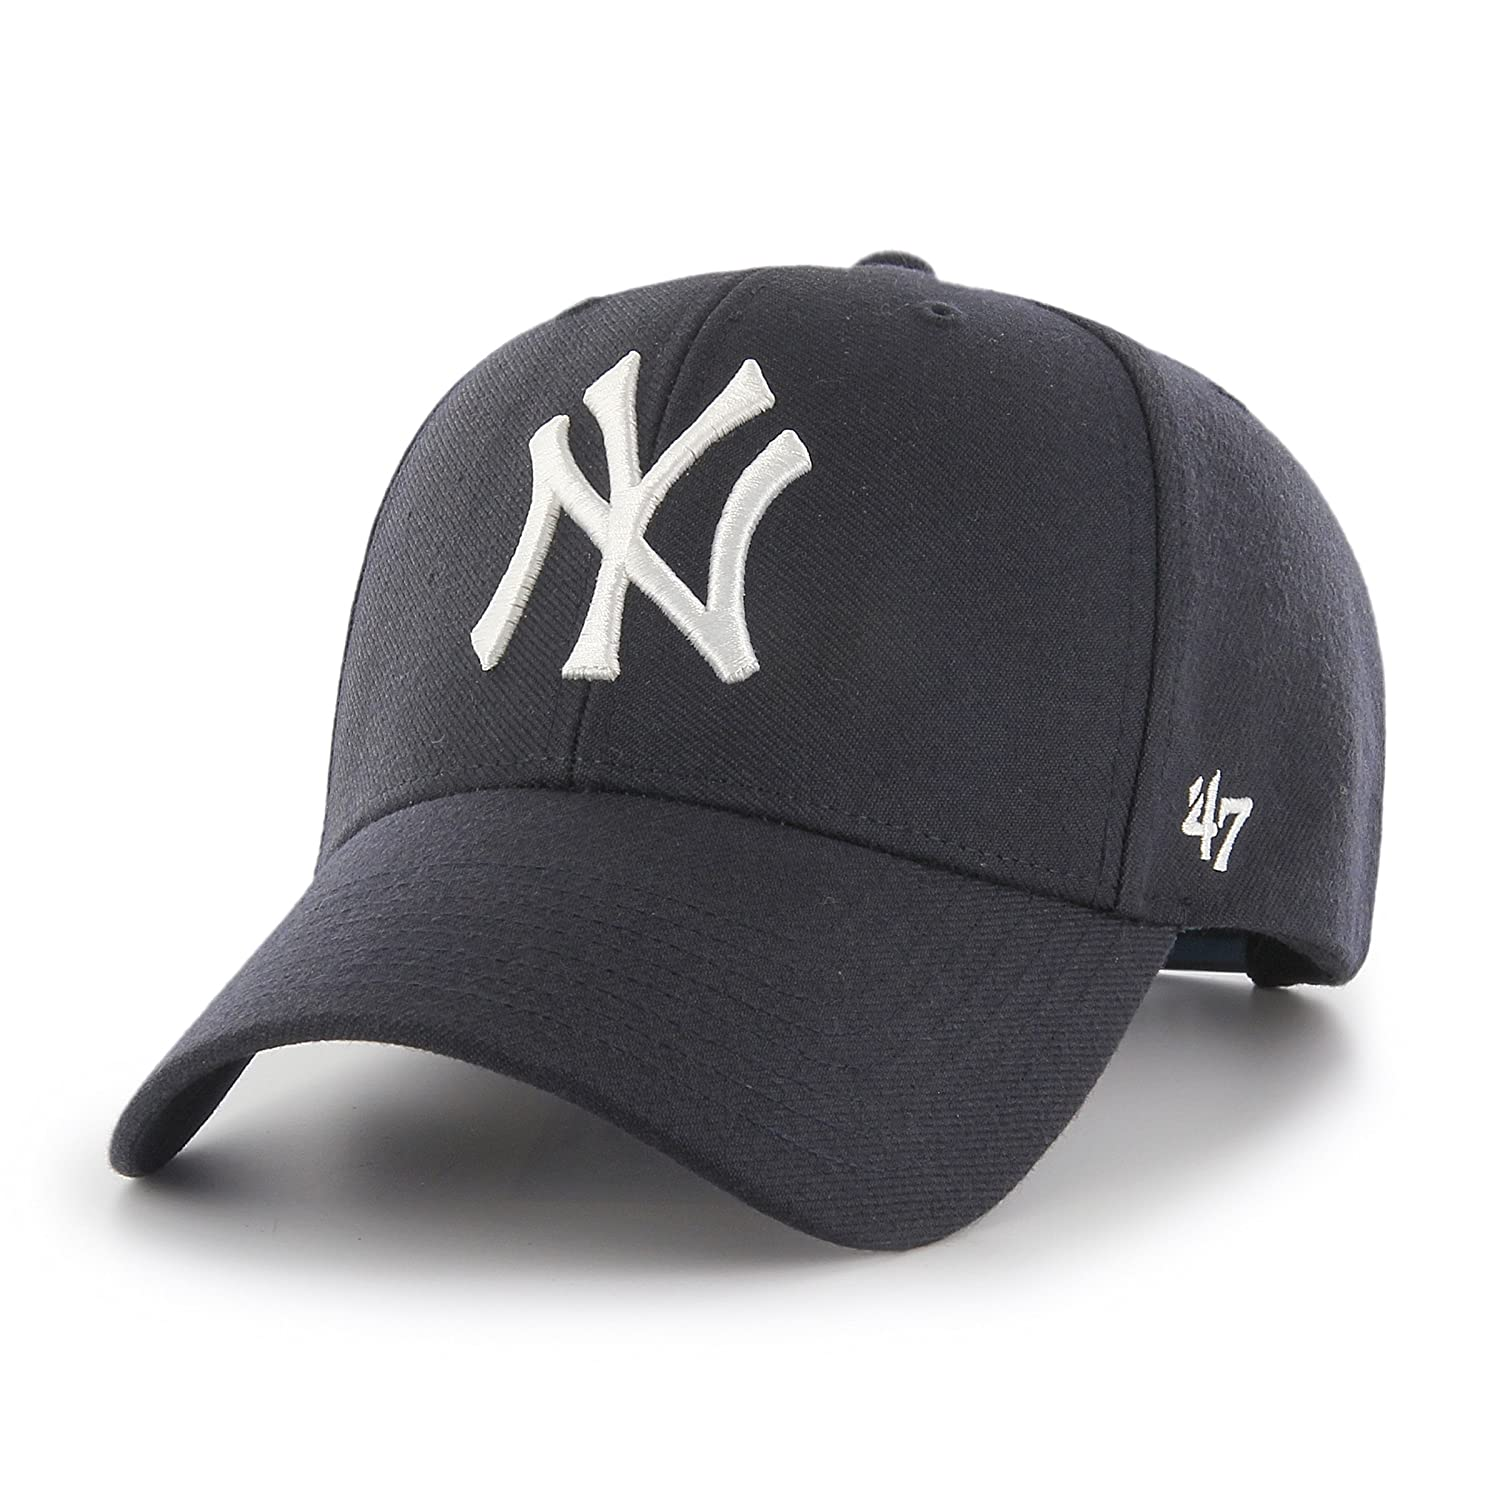 Amazon.com   47 Forty Seven Brand MVP New York Yankees Curved Visor Snapback  Cap Navy MLB Limited Edition  Clothing b49c15a3287